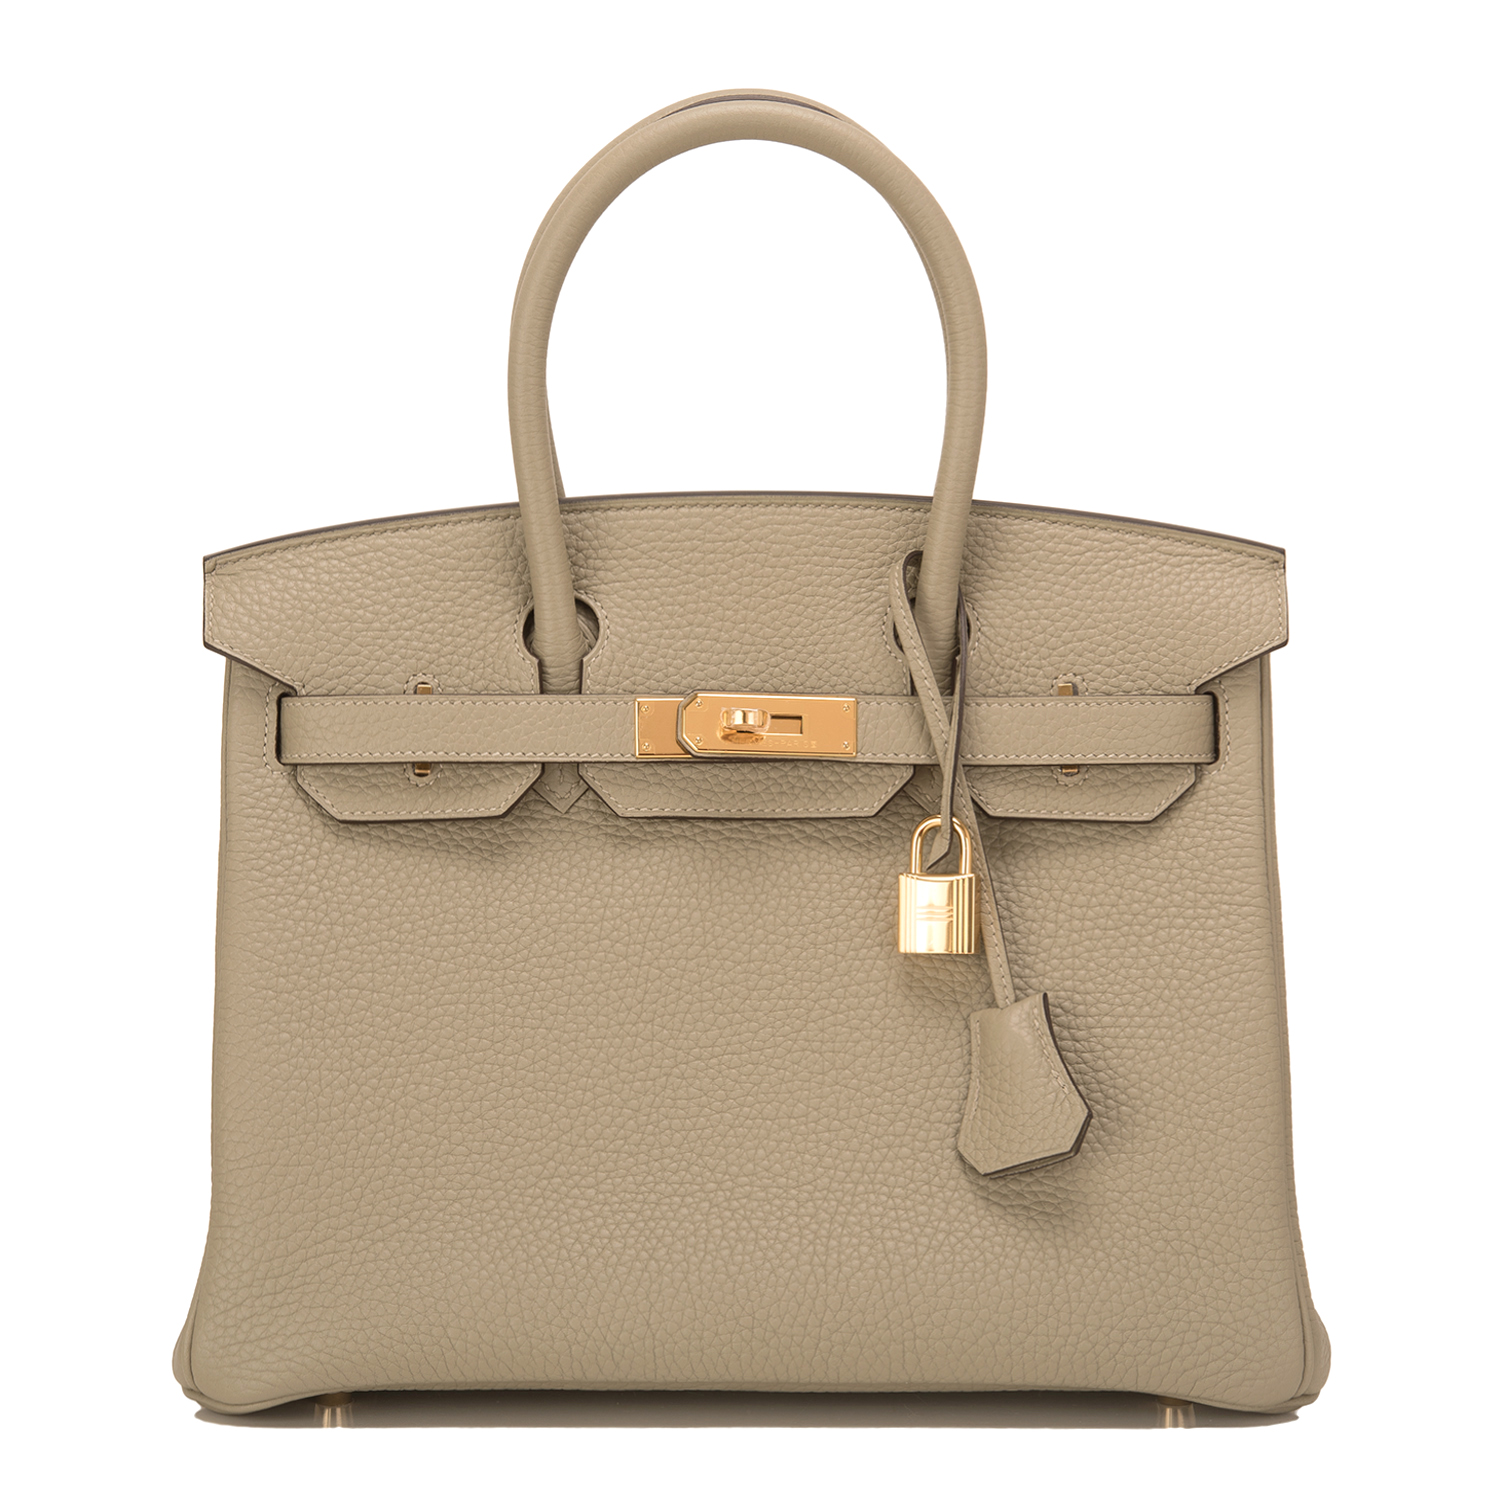 30cm Hermes Birkin Bag 30cm Sage Clemence Gold Hardware World